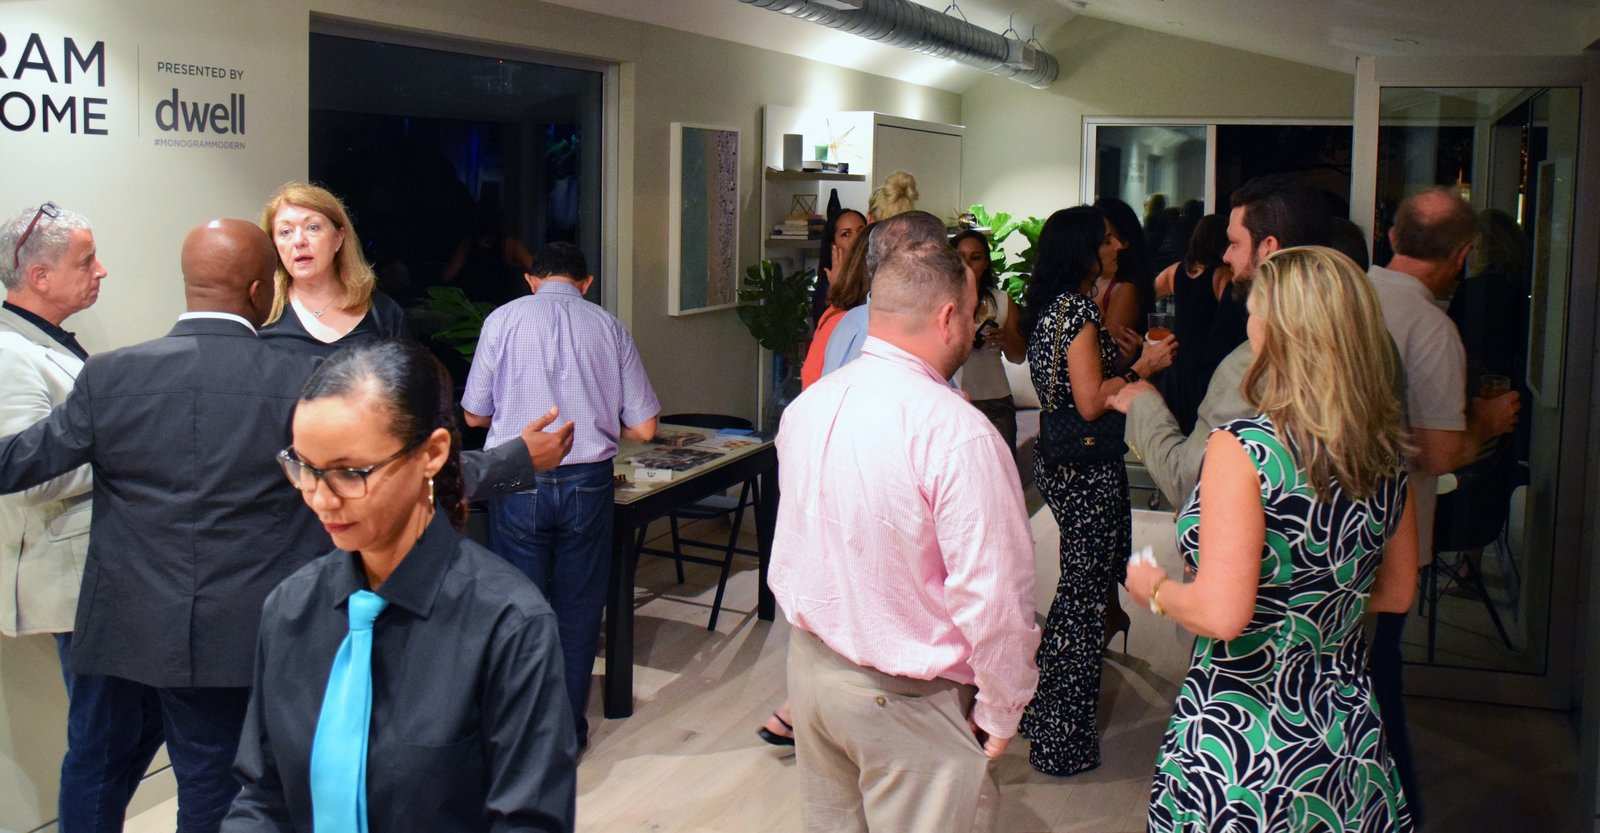 Photo 7 of 8 in Monogram Modern Home Lands at Miami Design Week